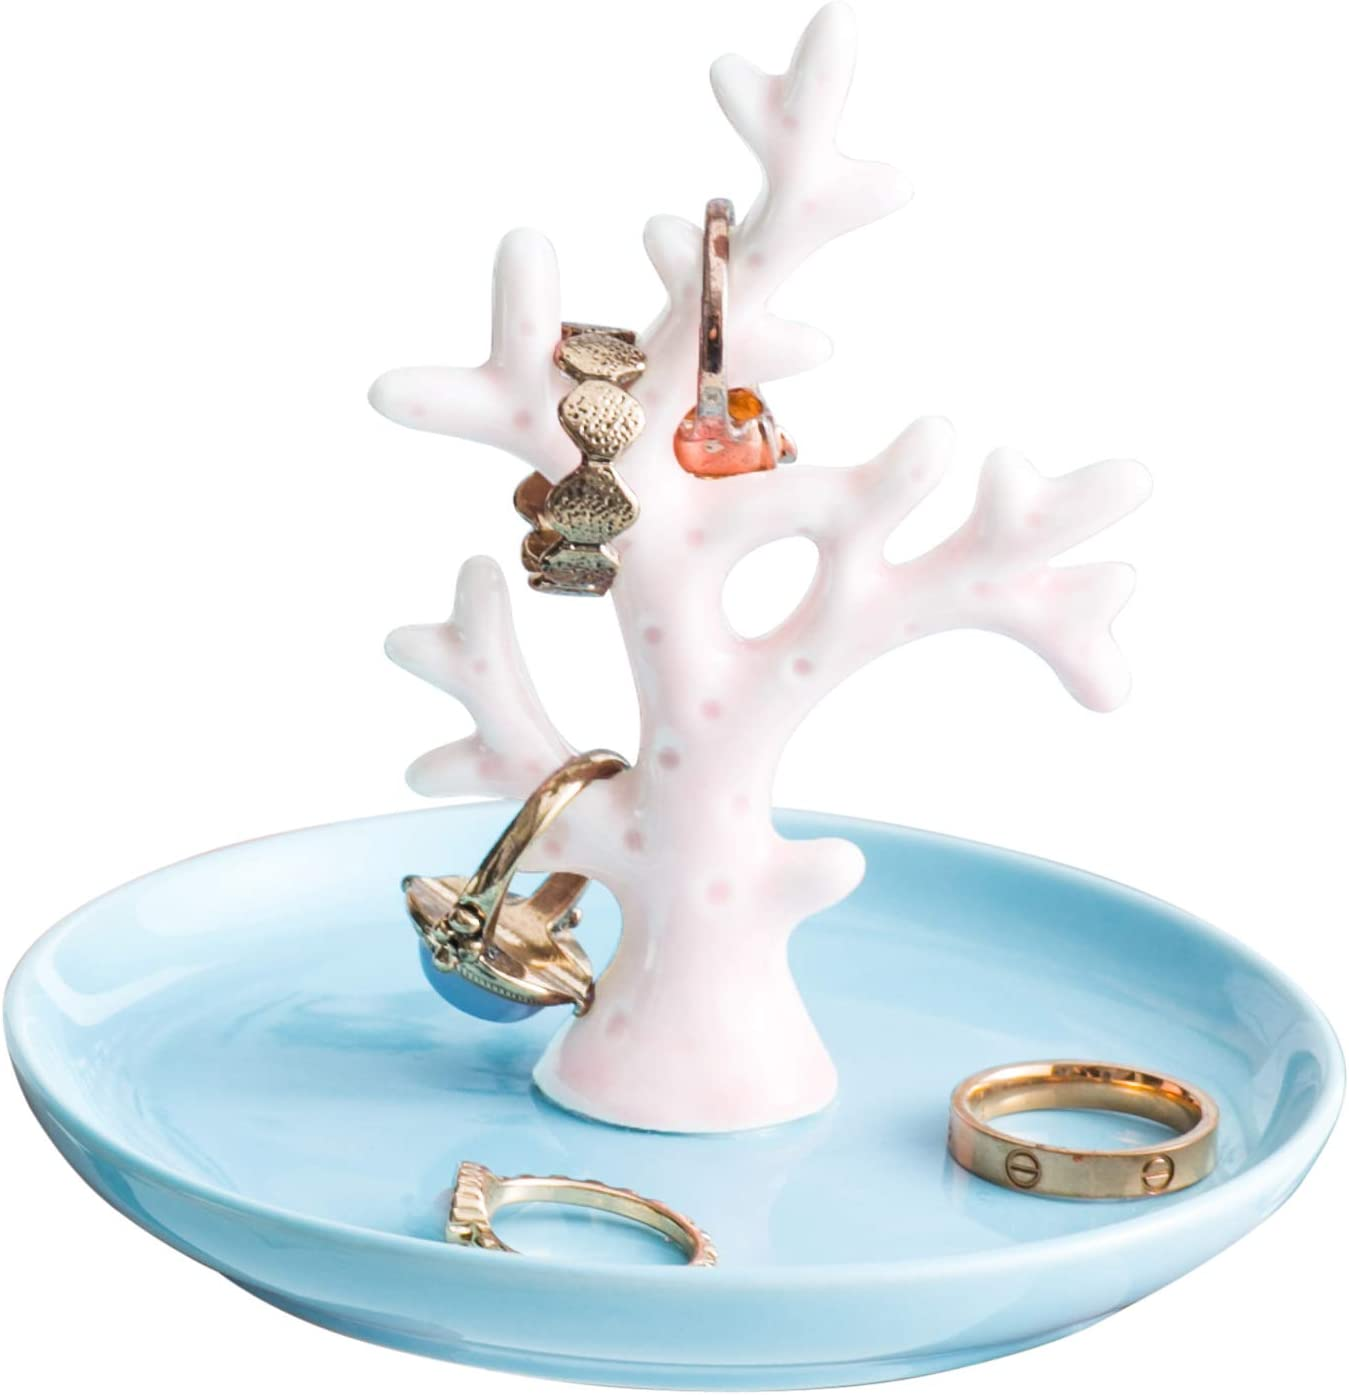 Jojuno Ceramic Coral Tree Ring Holder Dish Jewelry Pate Decor Dish Jewel Display Organizer Trinket Tray